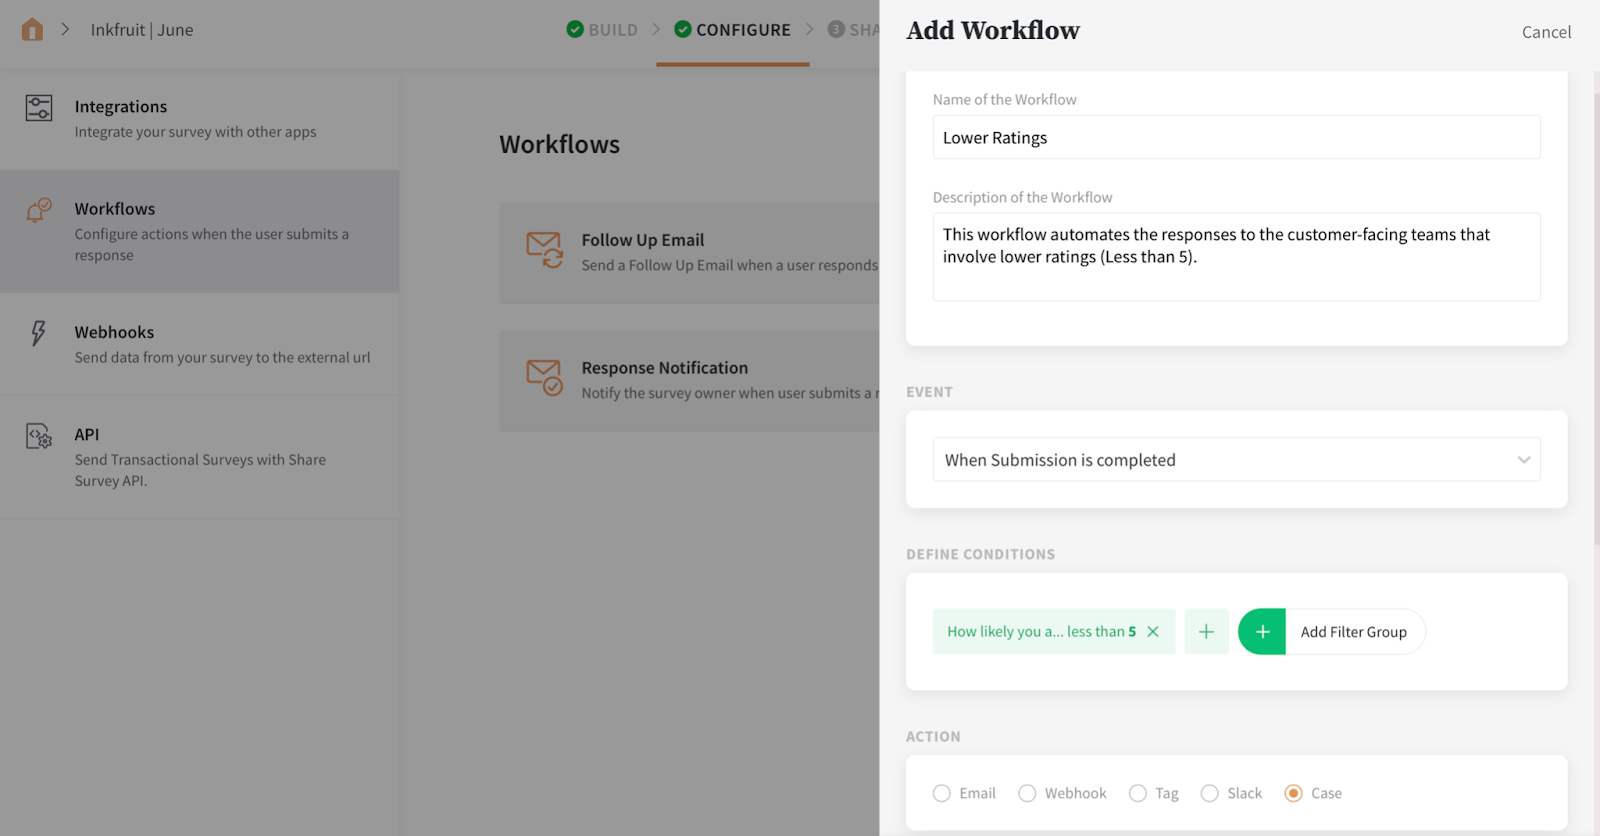 Add a New Workflow -> Fill in the details -> Select Case